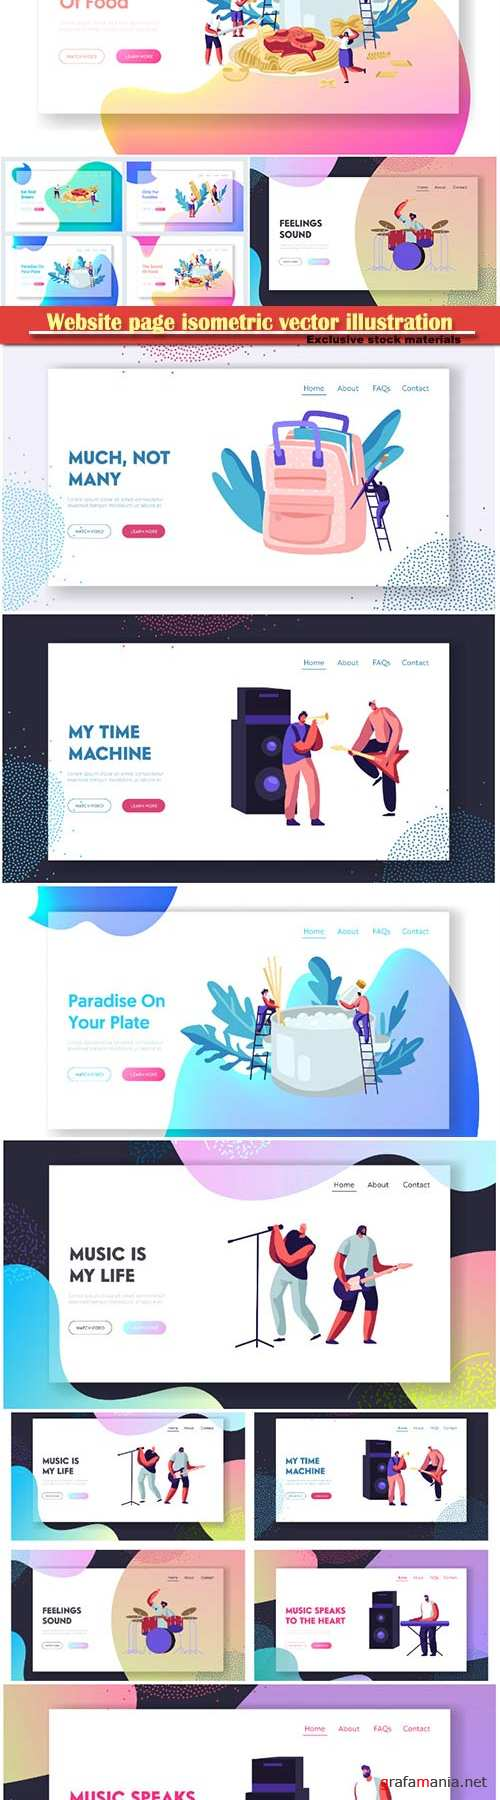 Website page isometric vector illustration, flat banner # 2